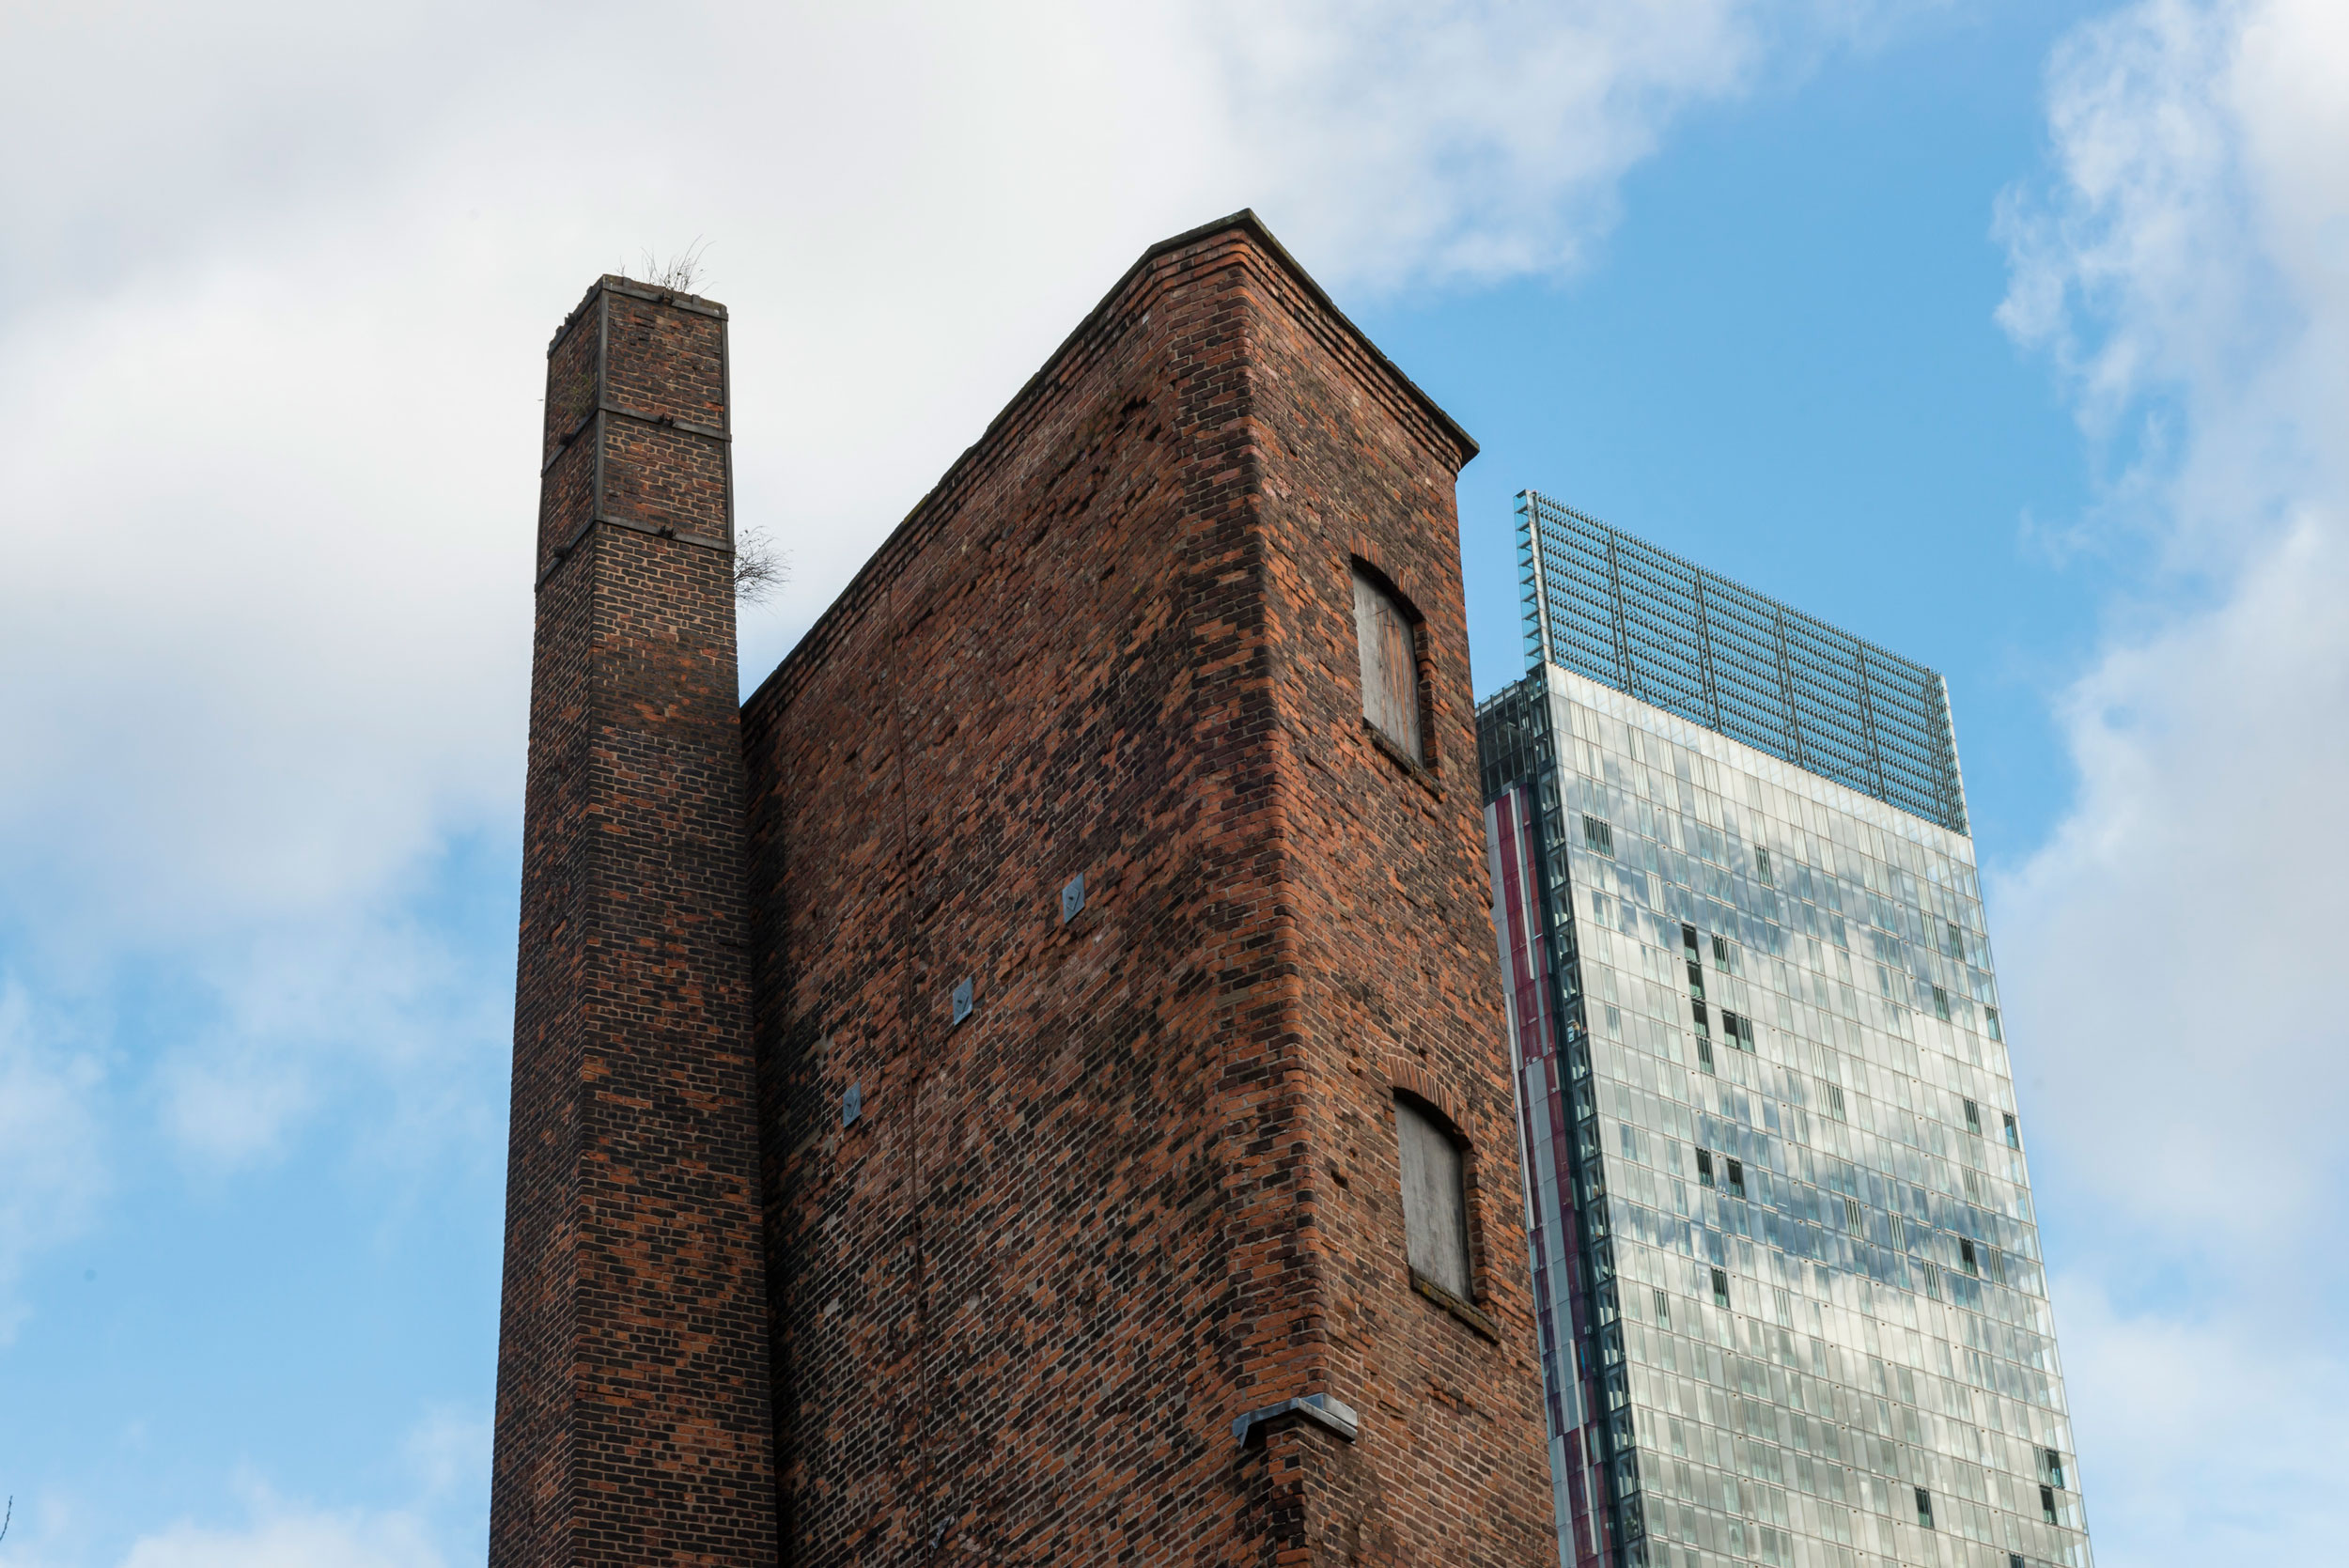 Manchester_Beetham_Tower_Story_photography.jpg